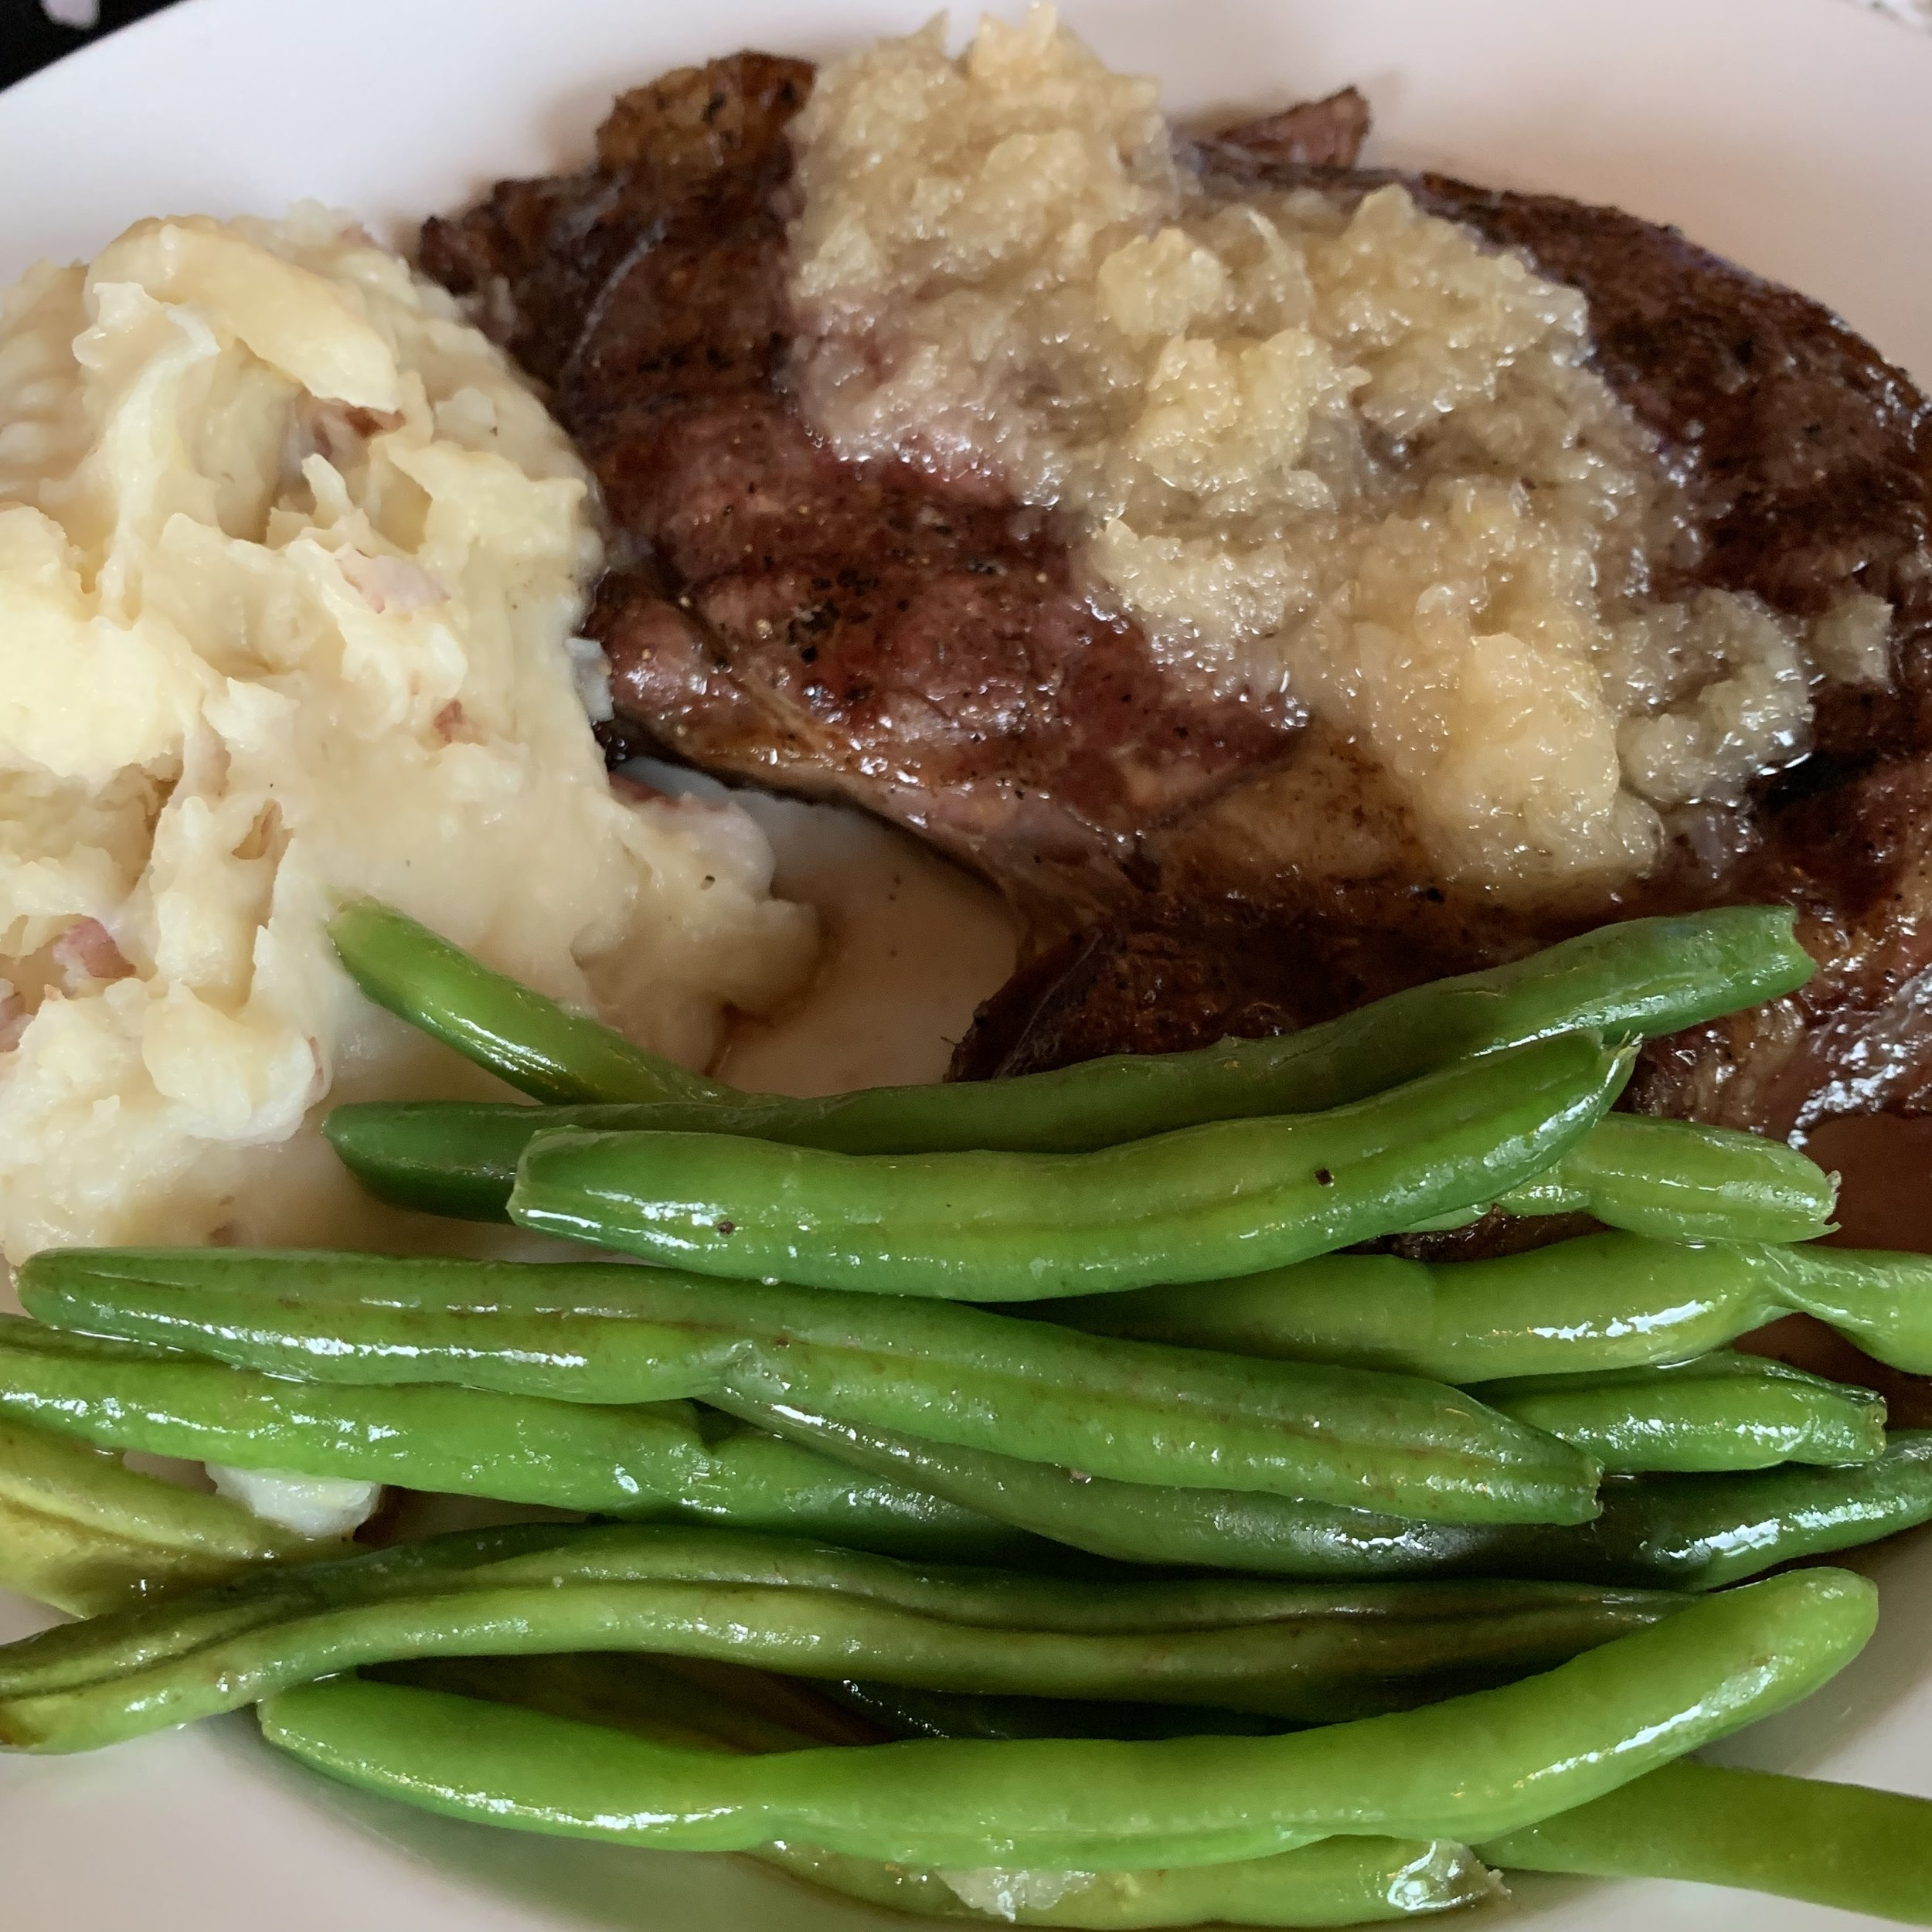 Steak Special with shallots, green beans and rustic mashed potatoes.